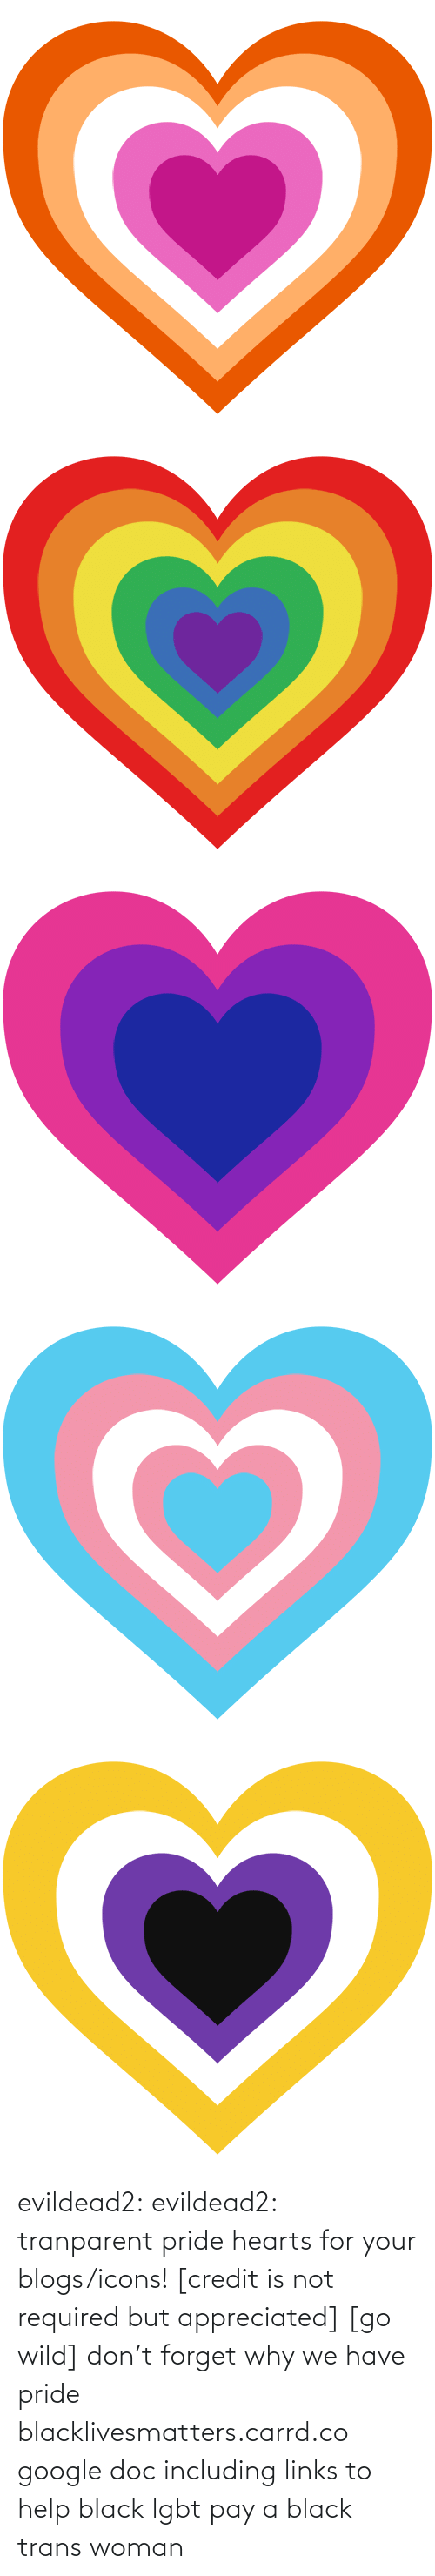 png: evildead2:  evildead2:  tranparent pride hearts for your blogs/icons! [credit is not required but appreciated] [go wild]      don't forget why we have pride  blacklivesmatters.carrd.co  google doc including links to help black lgbt pay a black trans woman